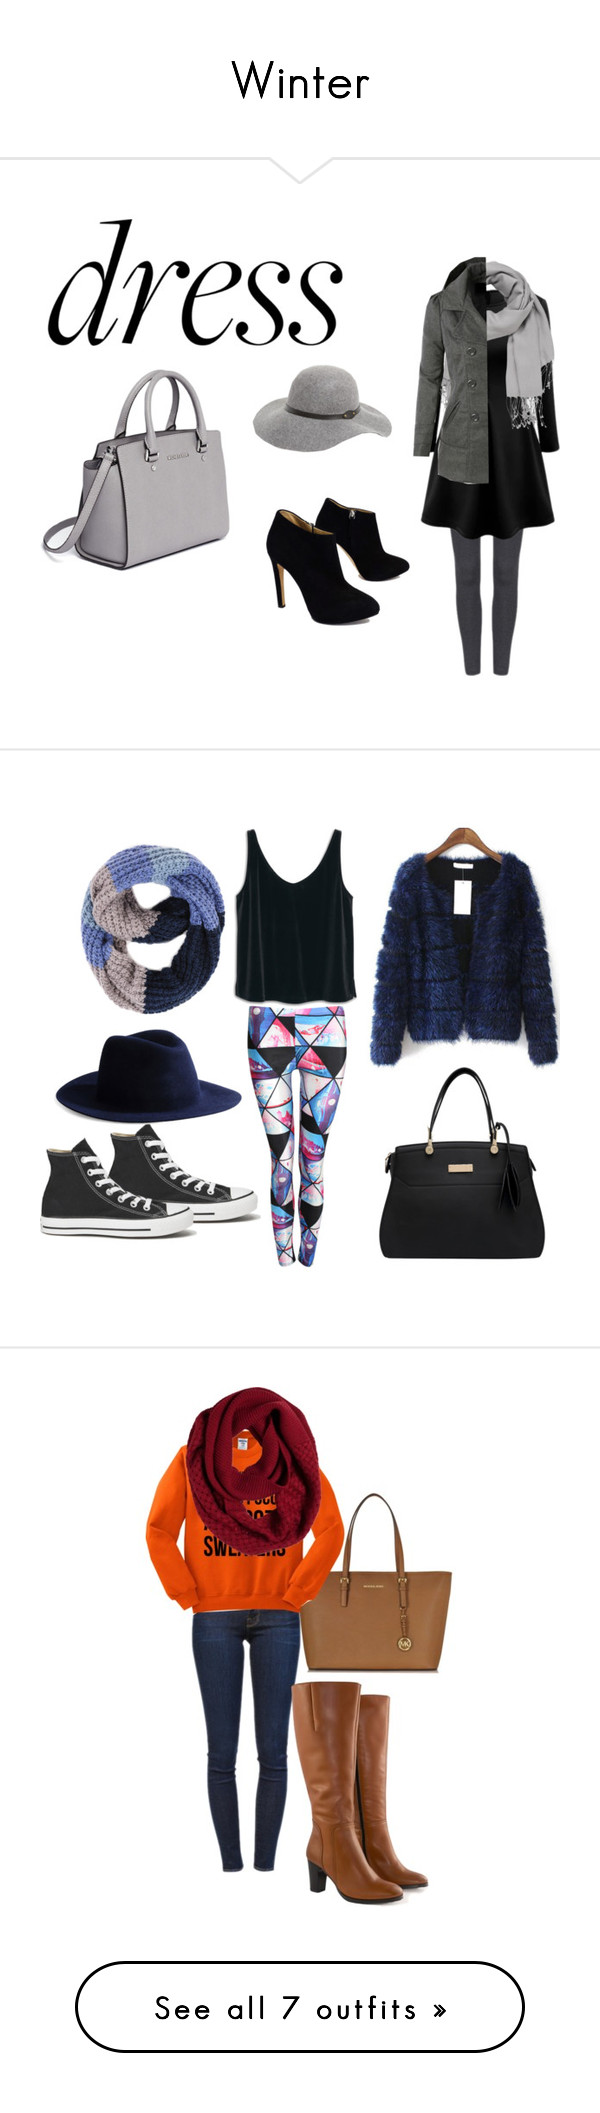 """""""Winter"""" by samantha-3112 ❤ liked on Polyvore featuring maurices, LE3NO, Giuseppe Zanotti, David & Young, MICHAEL Michael Kors, Winter, dress, cozy, cold and Pilot"""